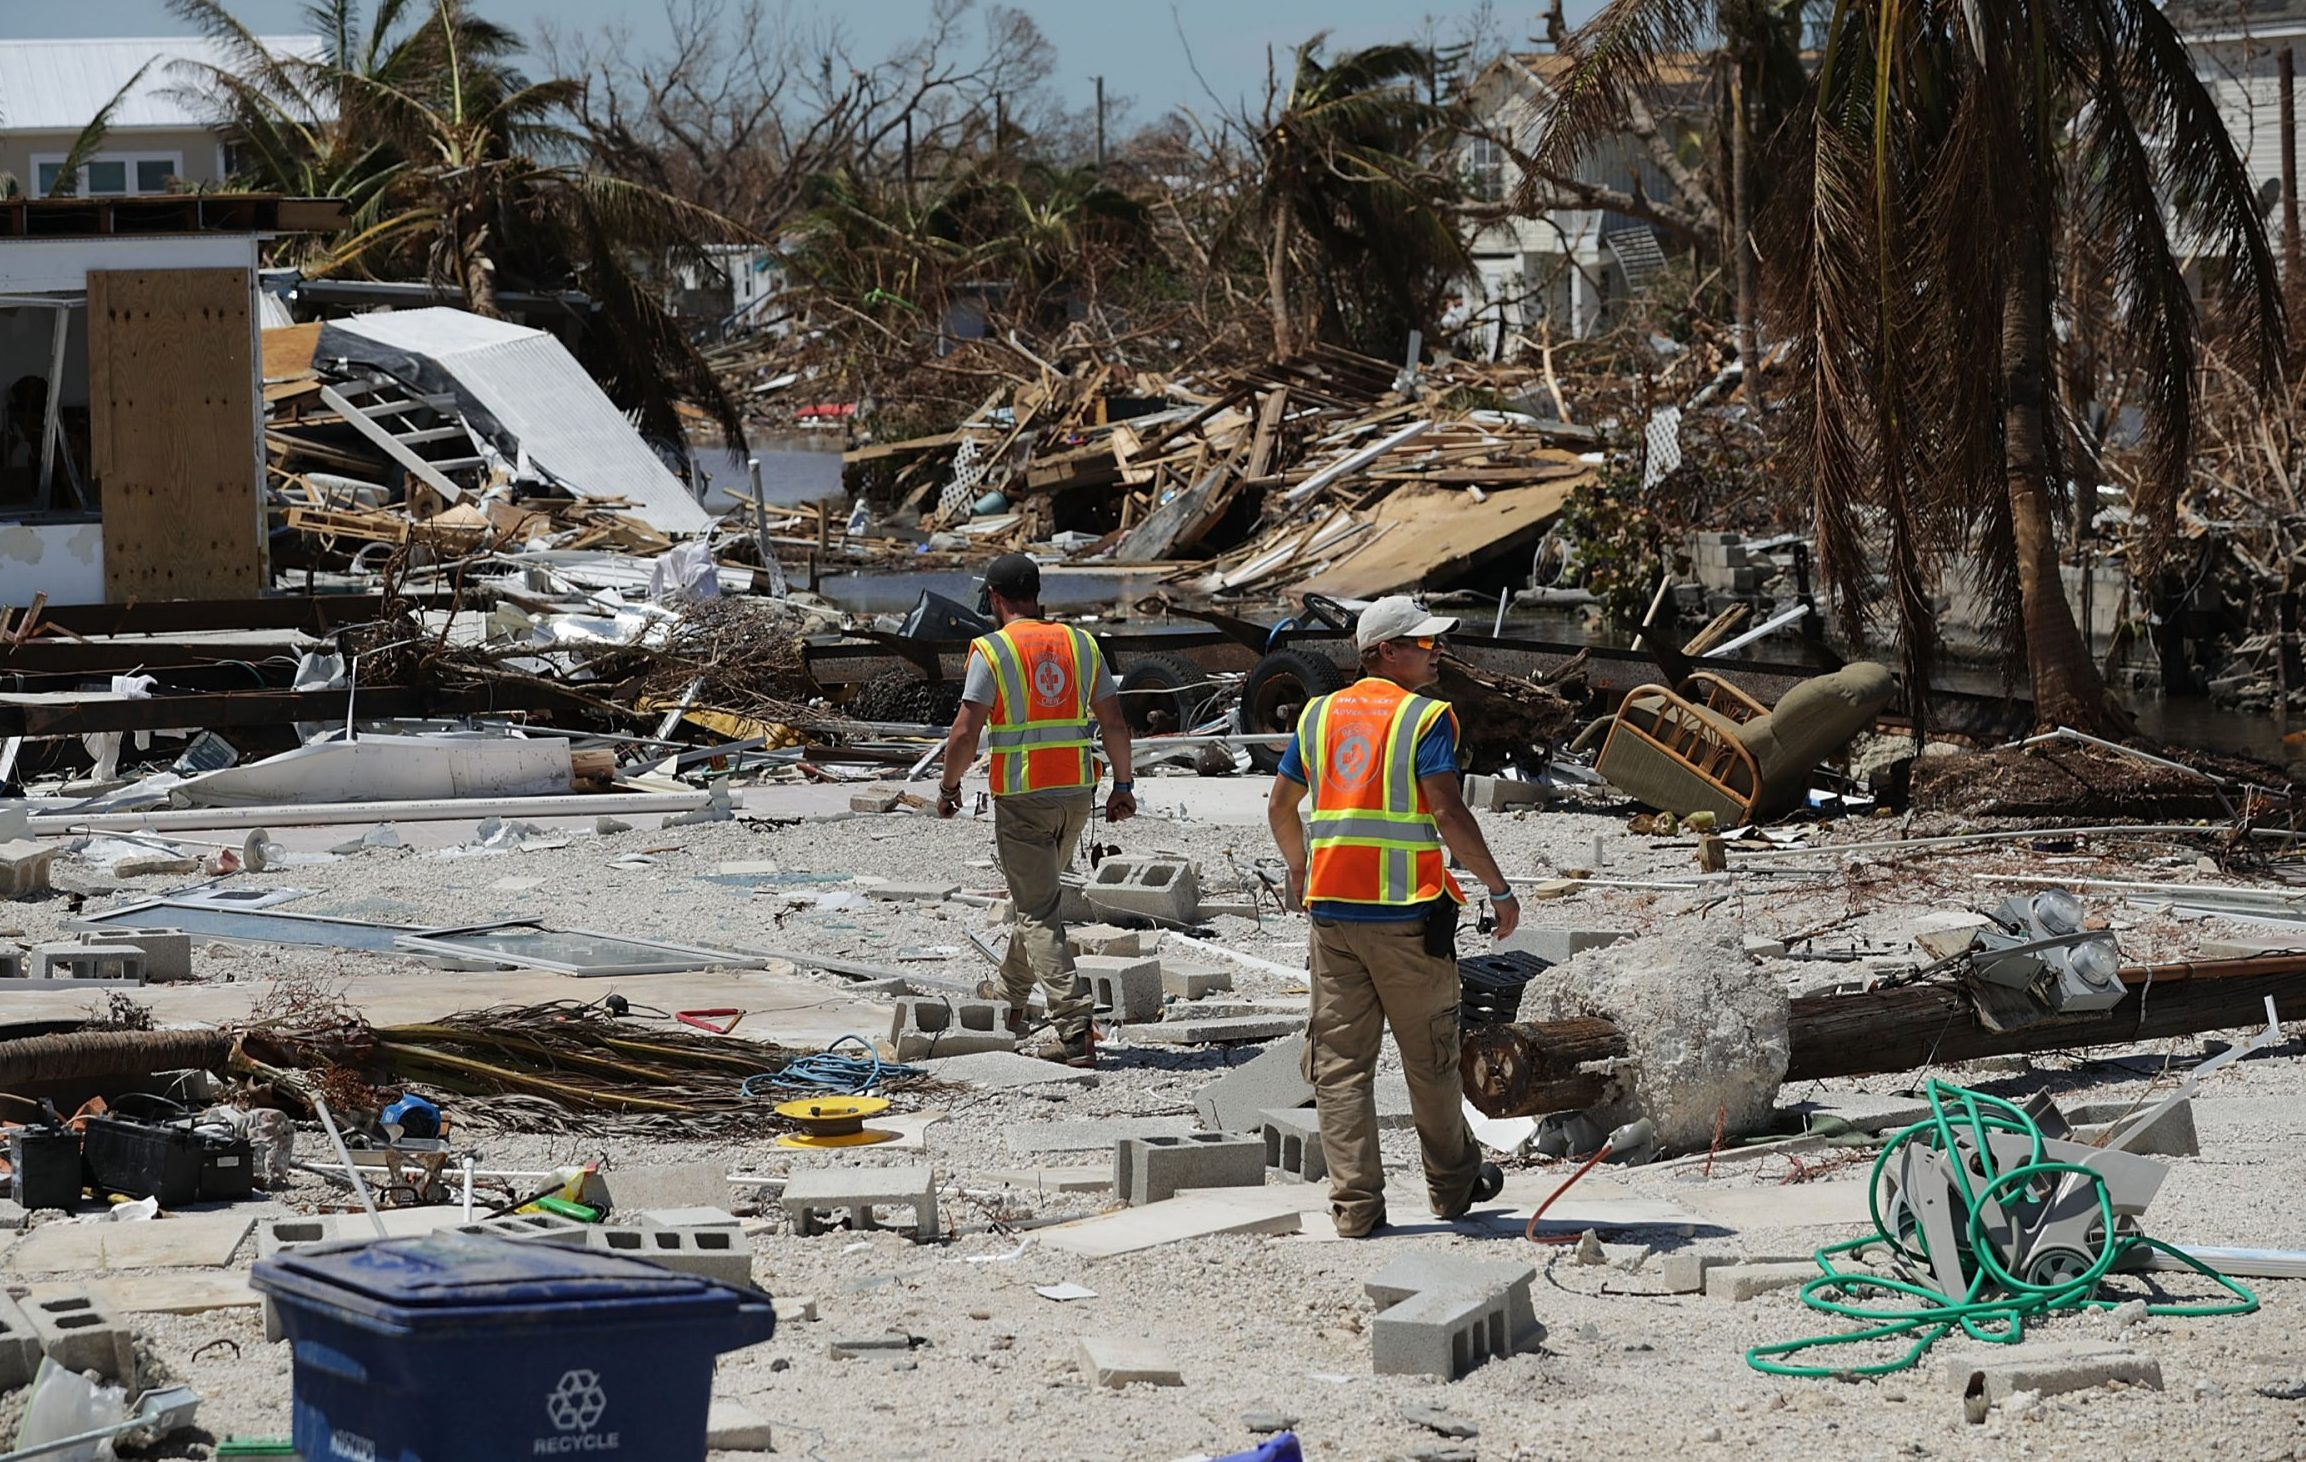 Florida Keys reopens for residents to assess damage after Hurricane Irma